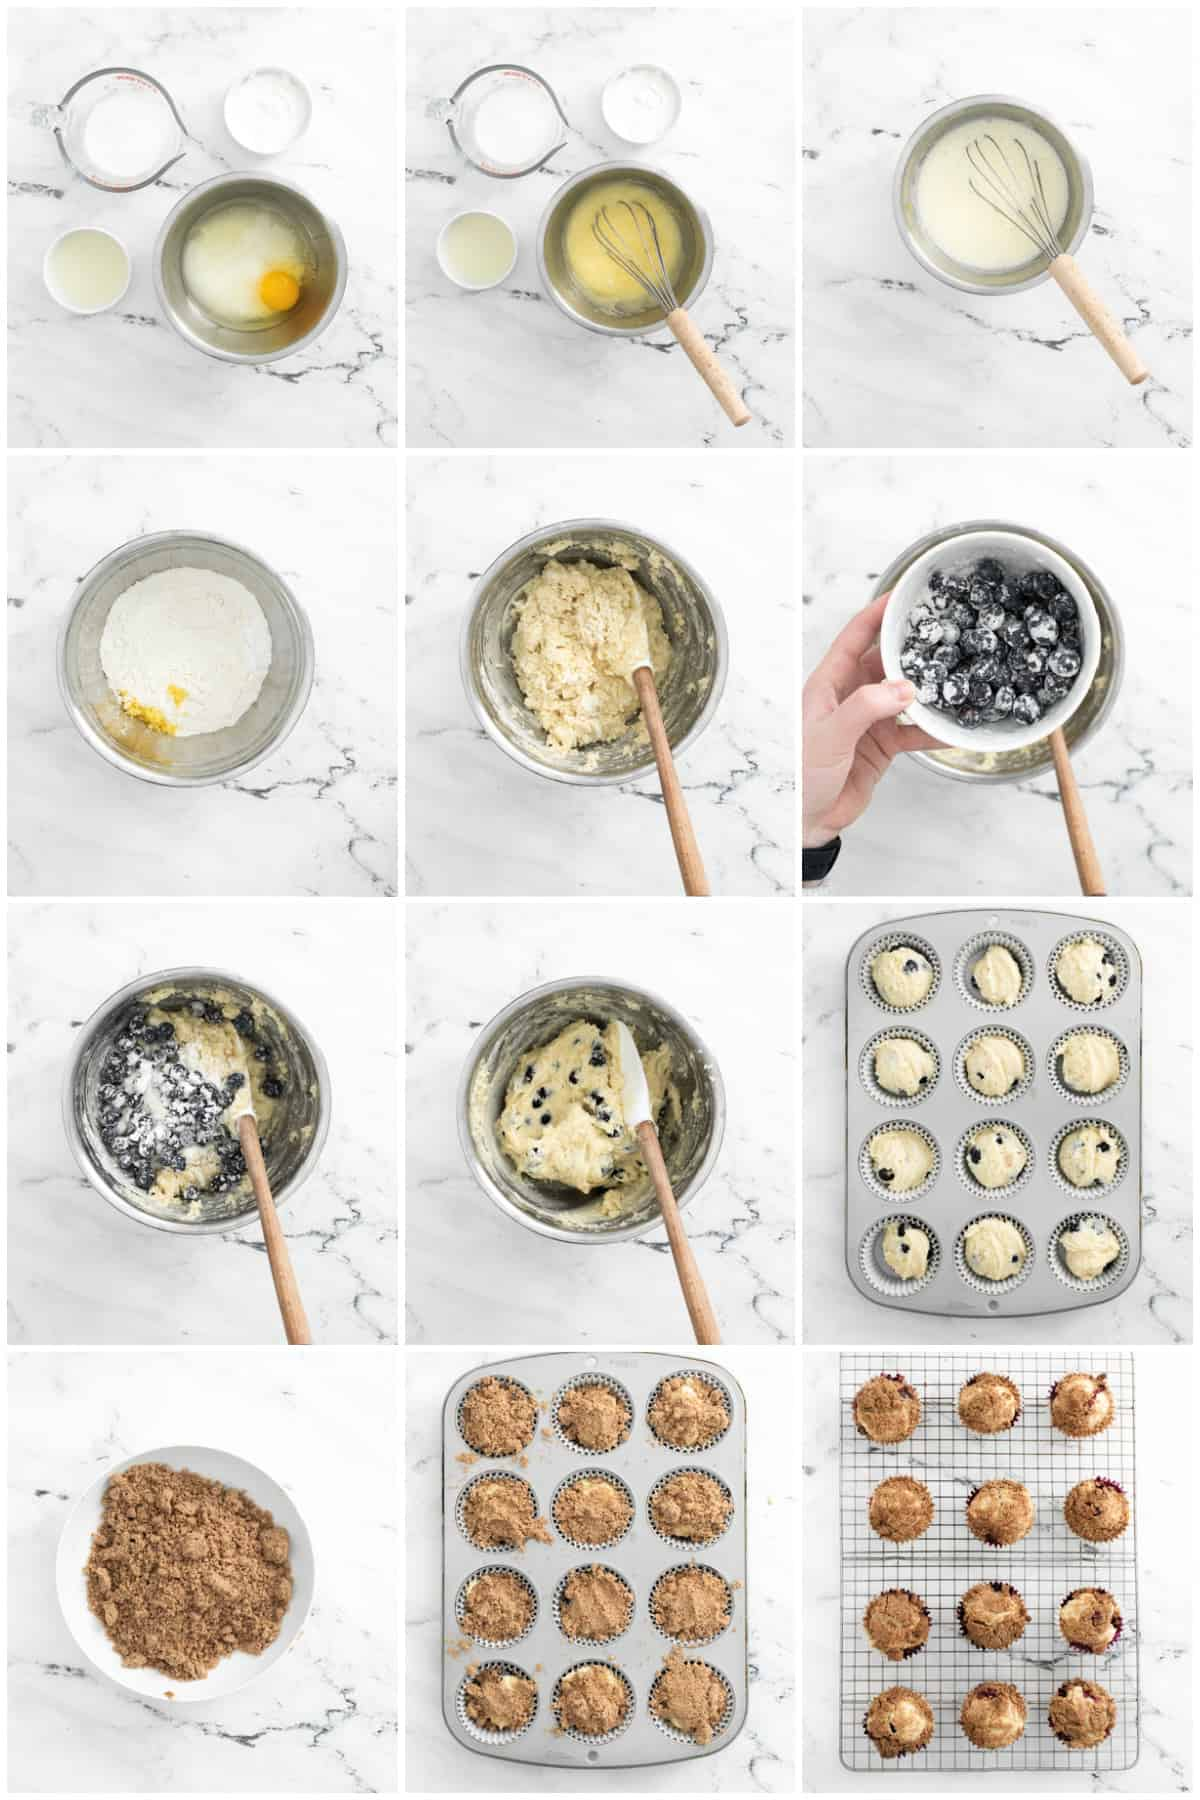 Step by step photos on how to make Lemon Blueberry Muffins